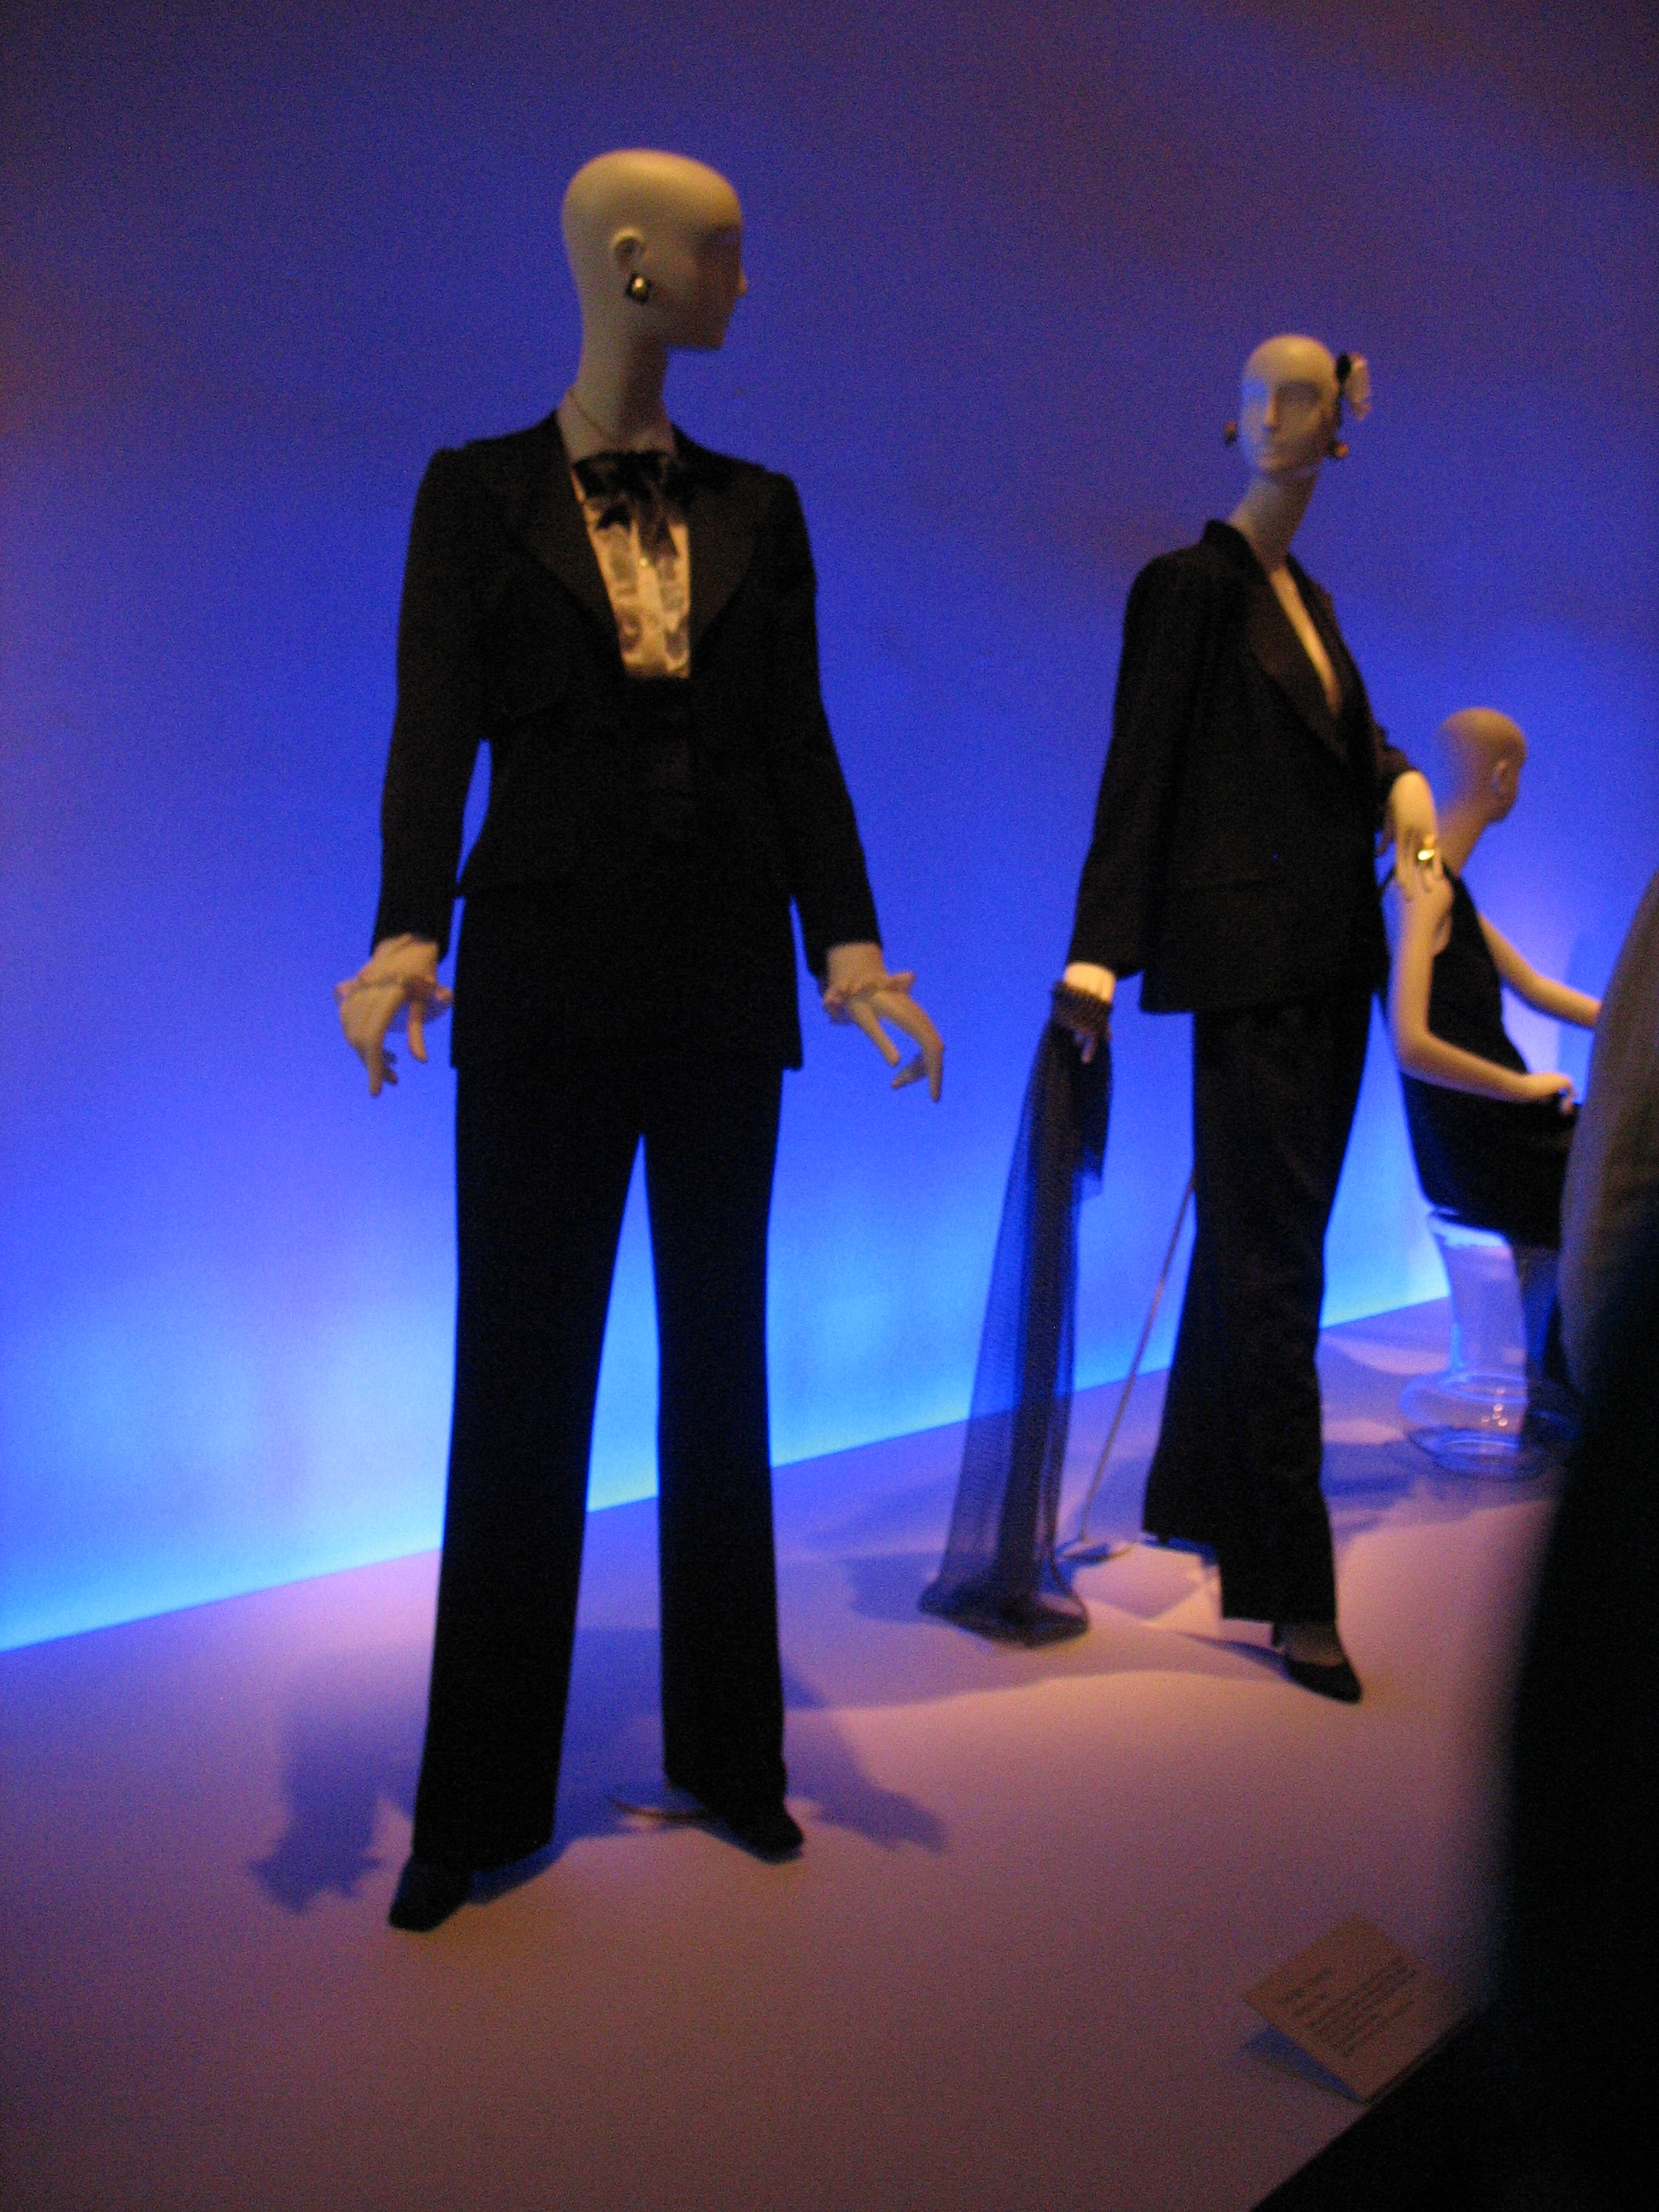 Yves_St_Laurent_le_smoking_at_deYoung_Museum_San_Francisco